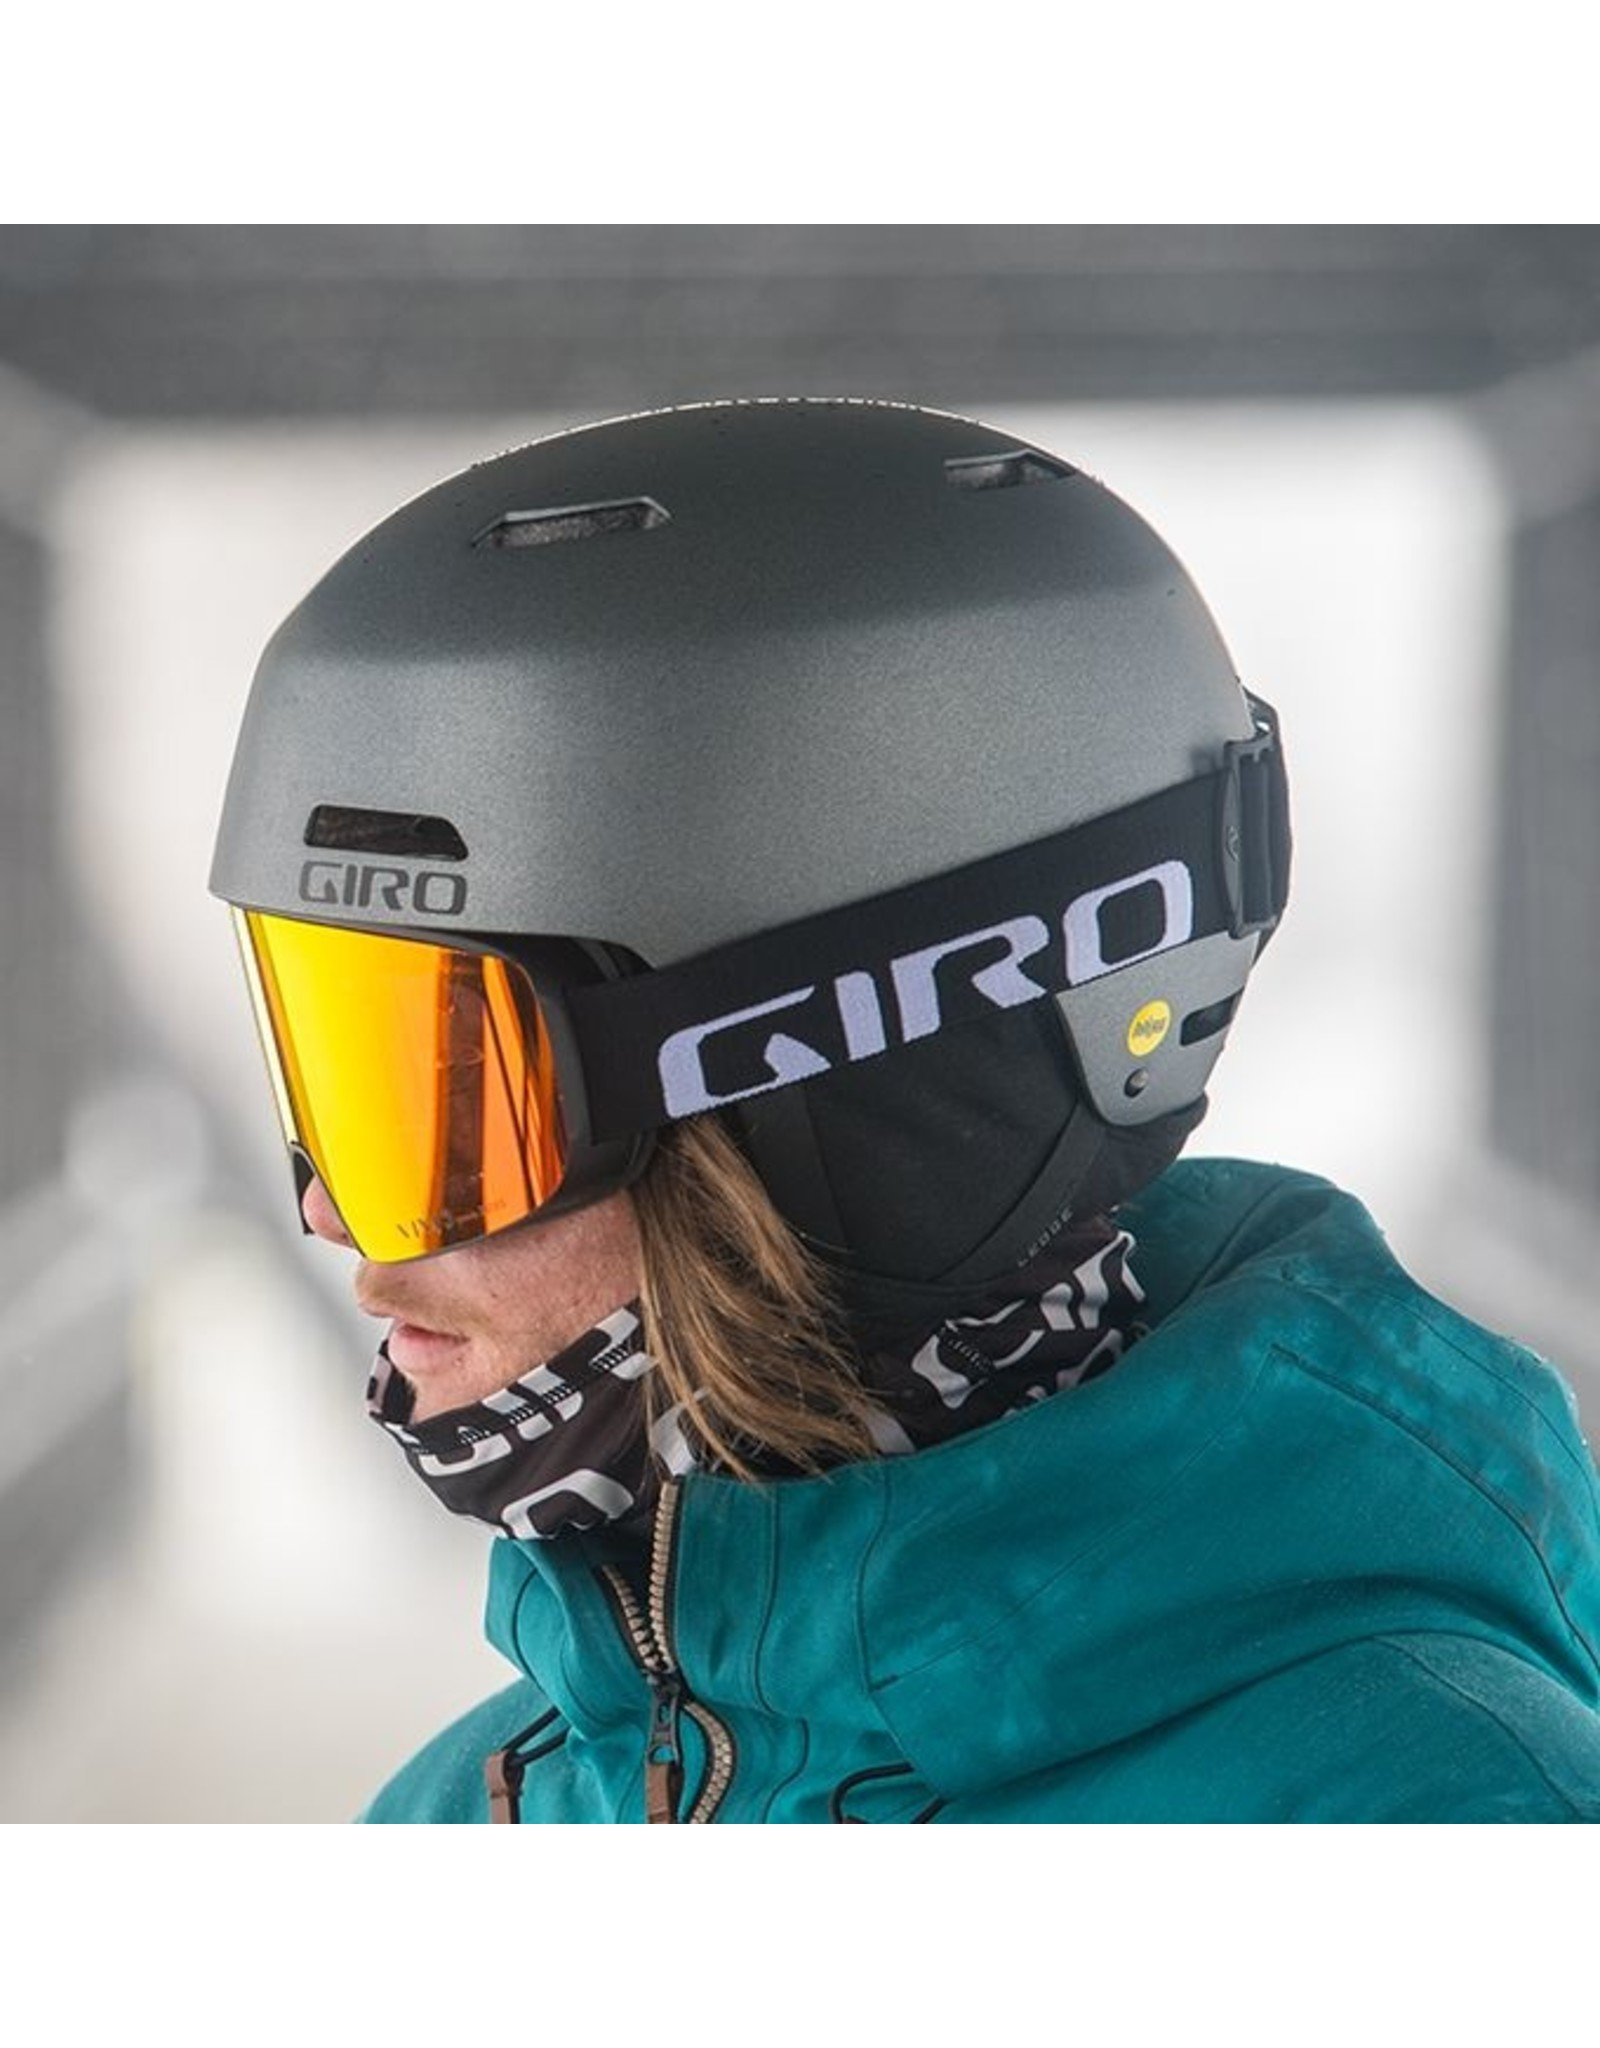 Giro GIRO LEDGE CASQUE DE SKI GRAPHITE 20